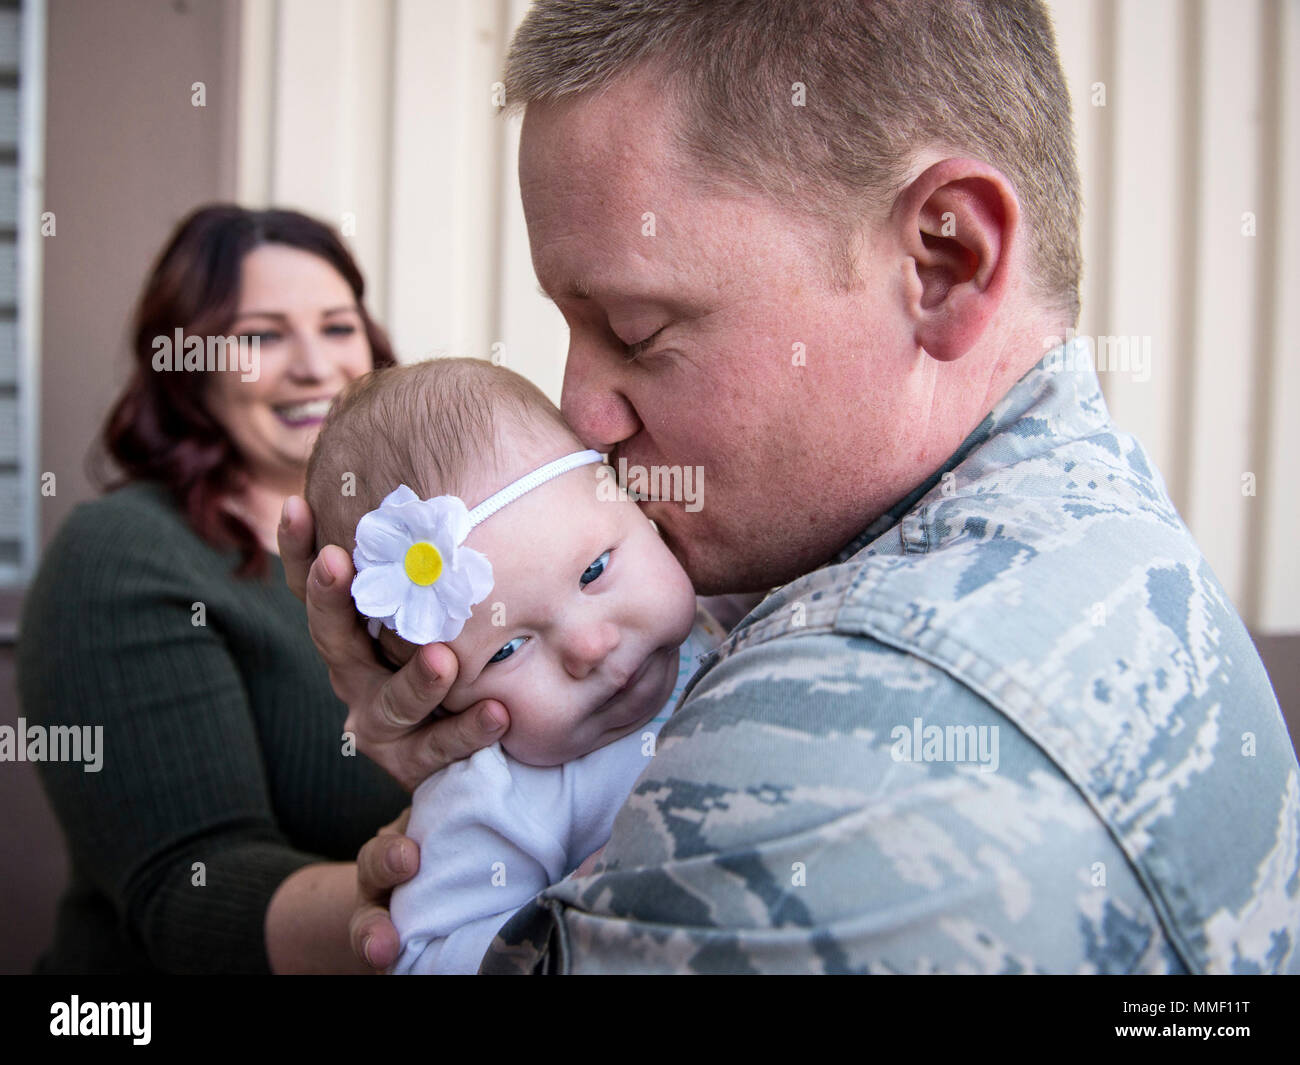 staff sgt derek schmidt 729th air control squadron meets his 4